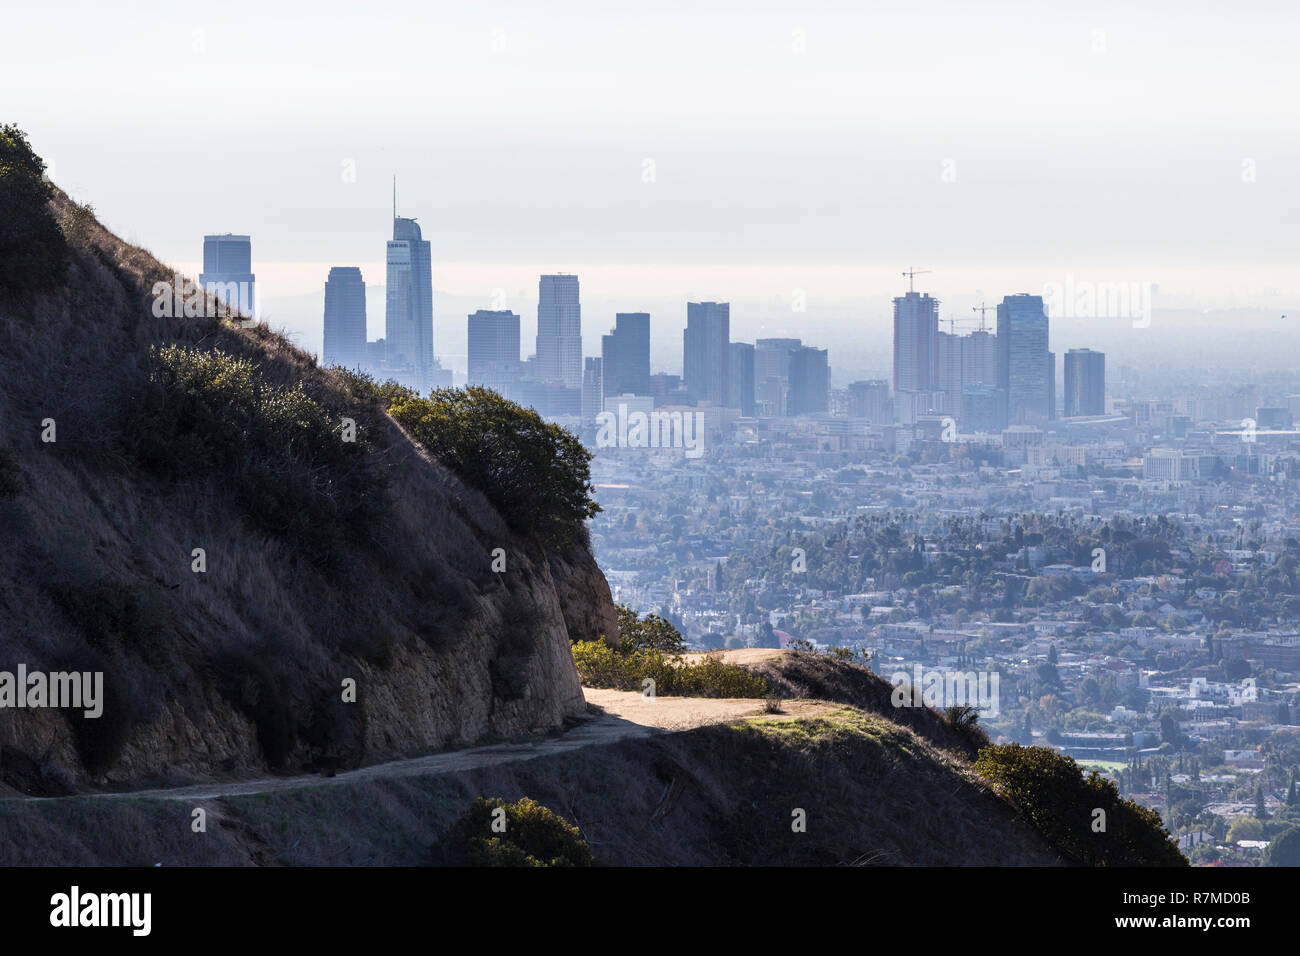 Early morning view of Griffith Park trails and downtown towers in Los Angeles, California. Stock Photo